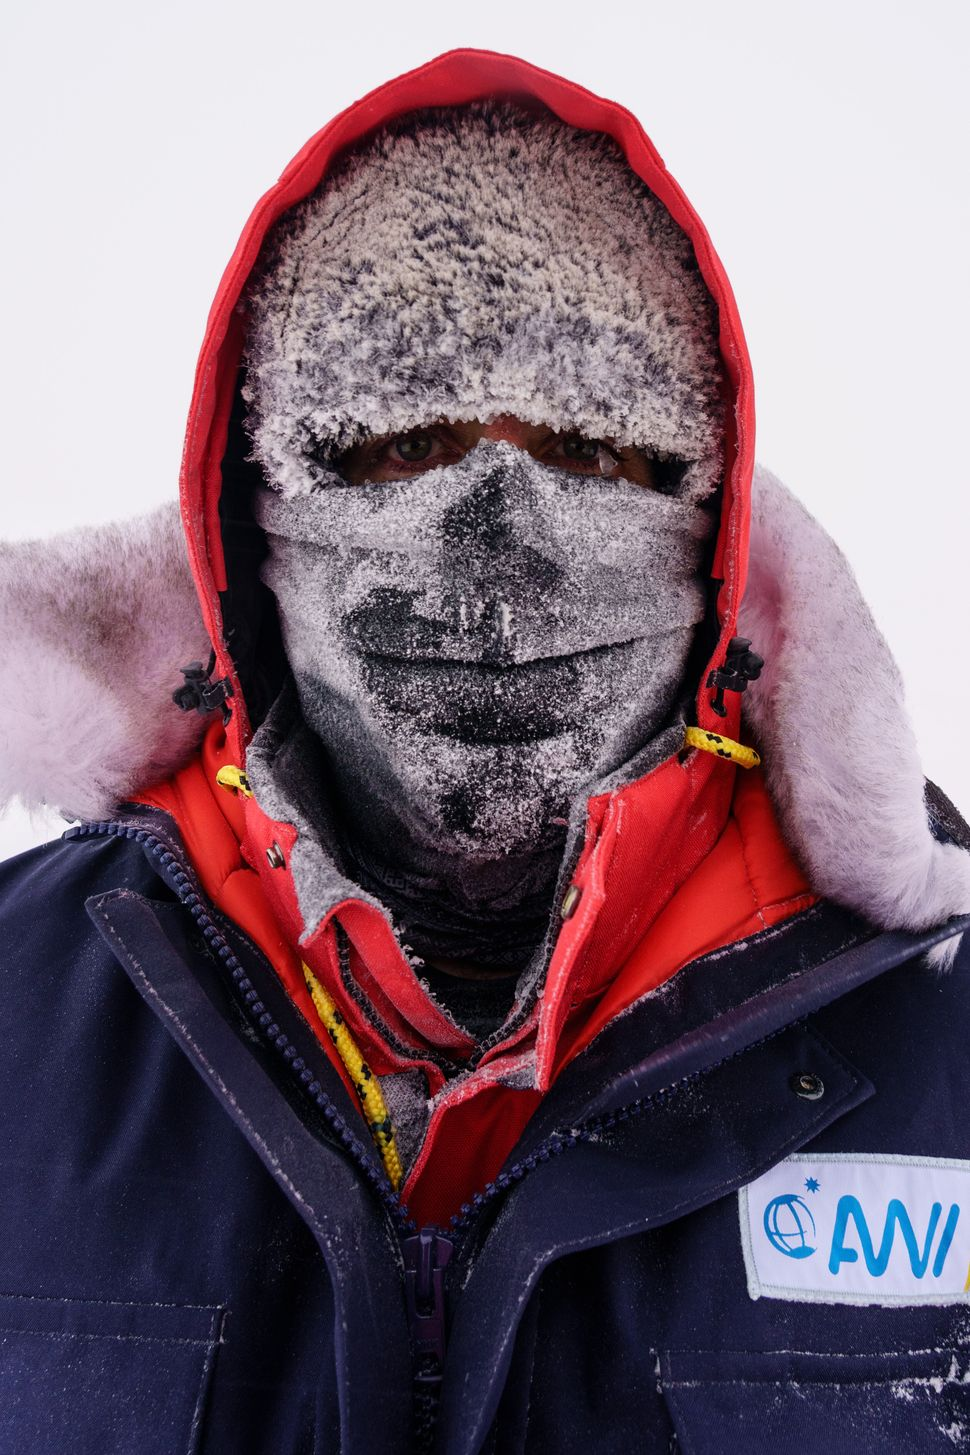 Storms and brutally cold temperatures make science difficult at the top of the world.